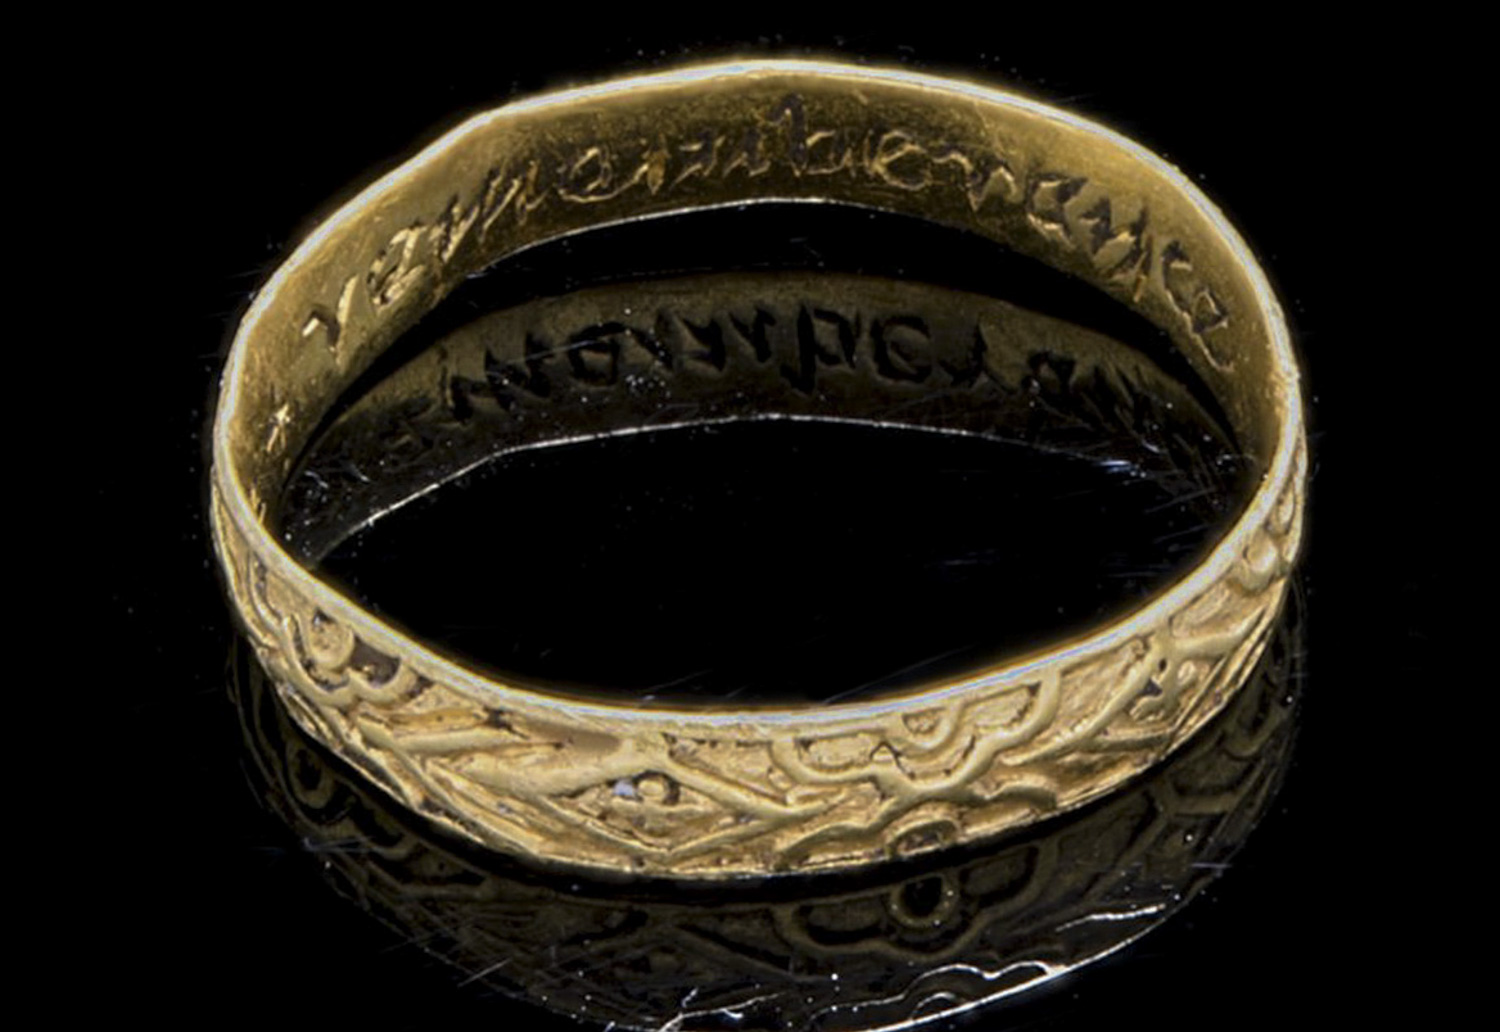 17th century gold ring found near Fraserburgh